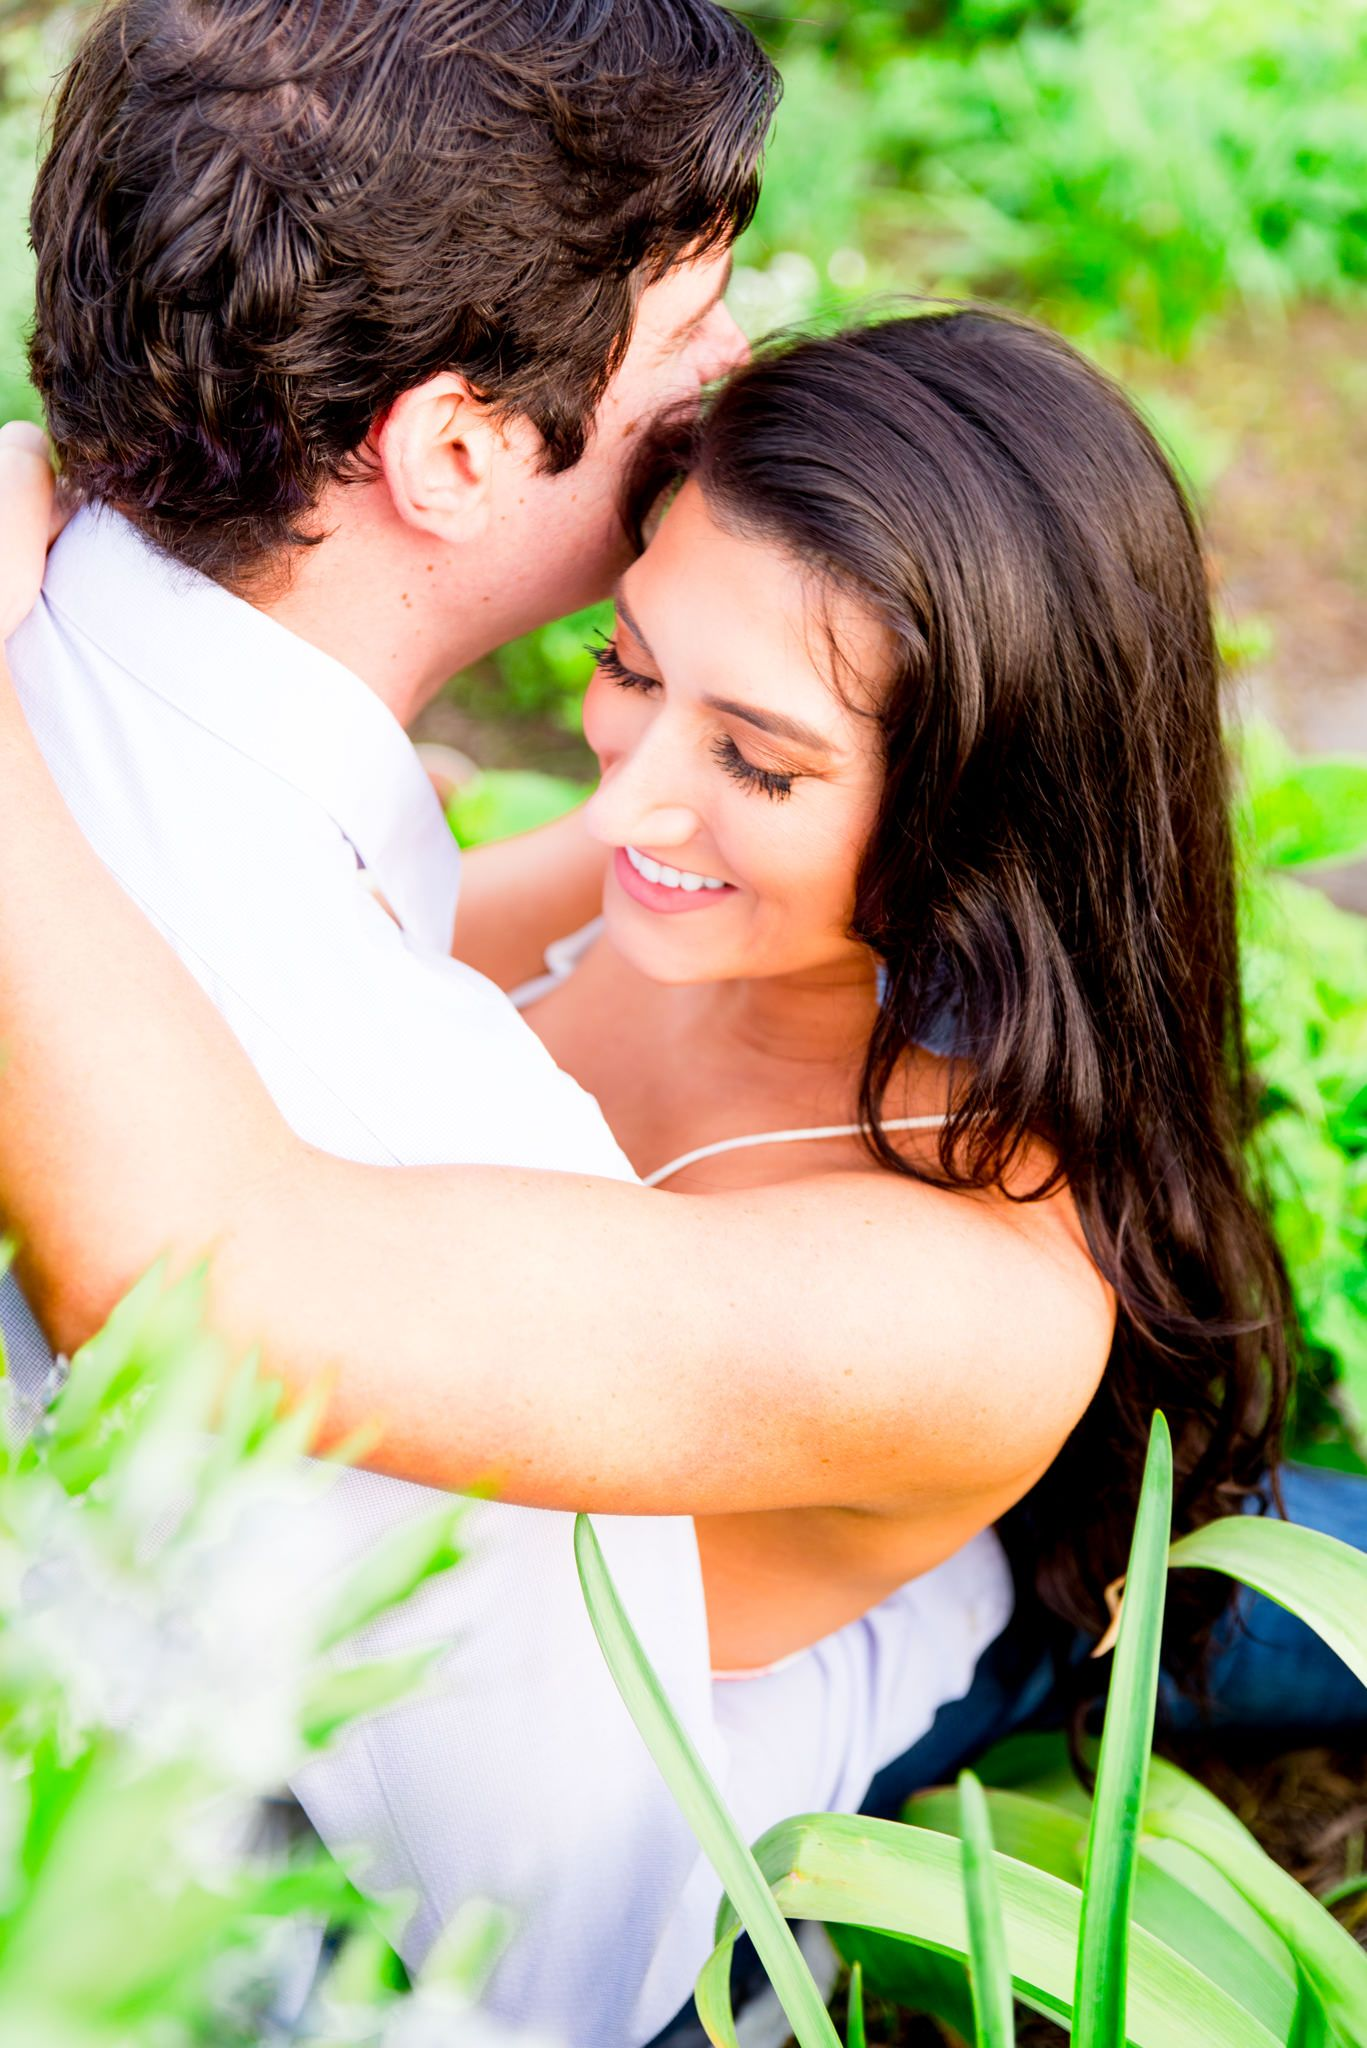 woman with long dark hair hugging fiance and smiling with eyes closed in Lincoln Park gardens